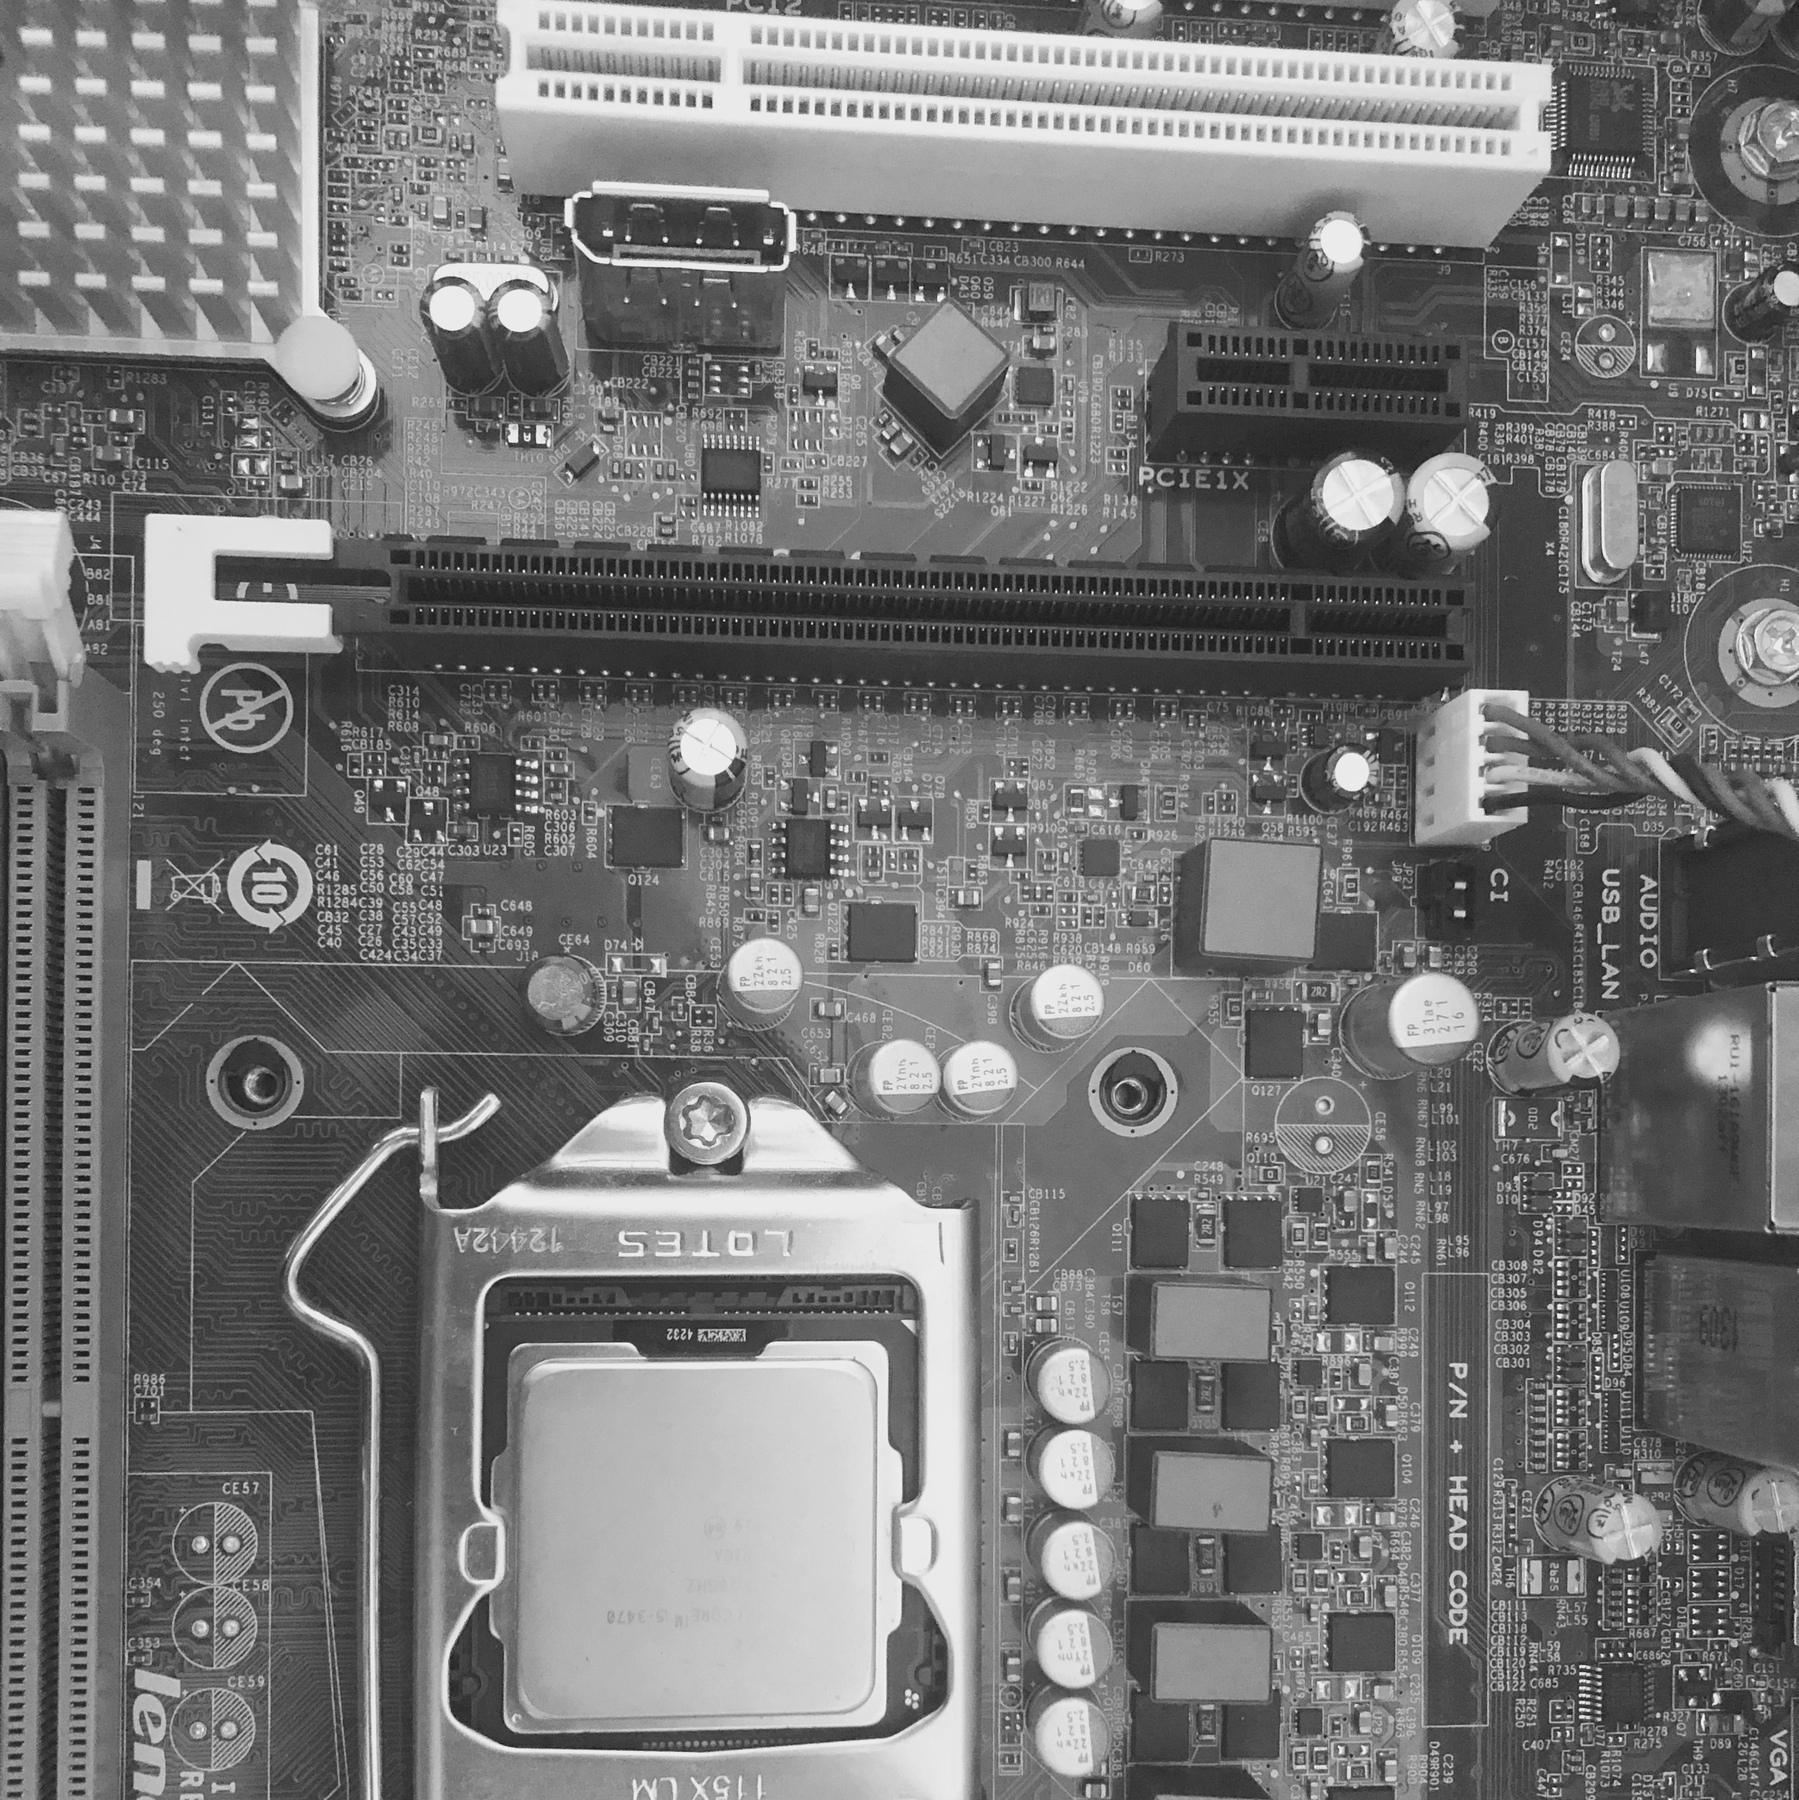 An artistic close up of a motherboard